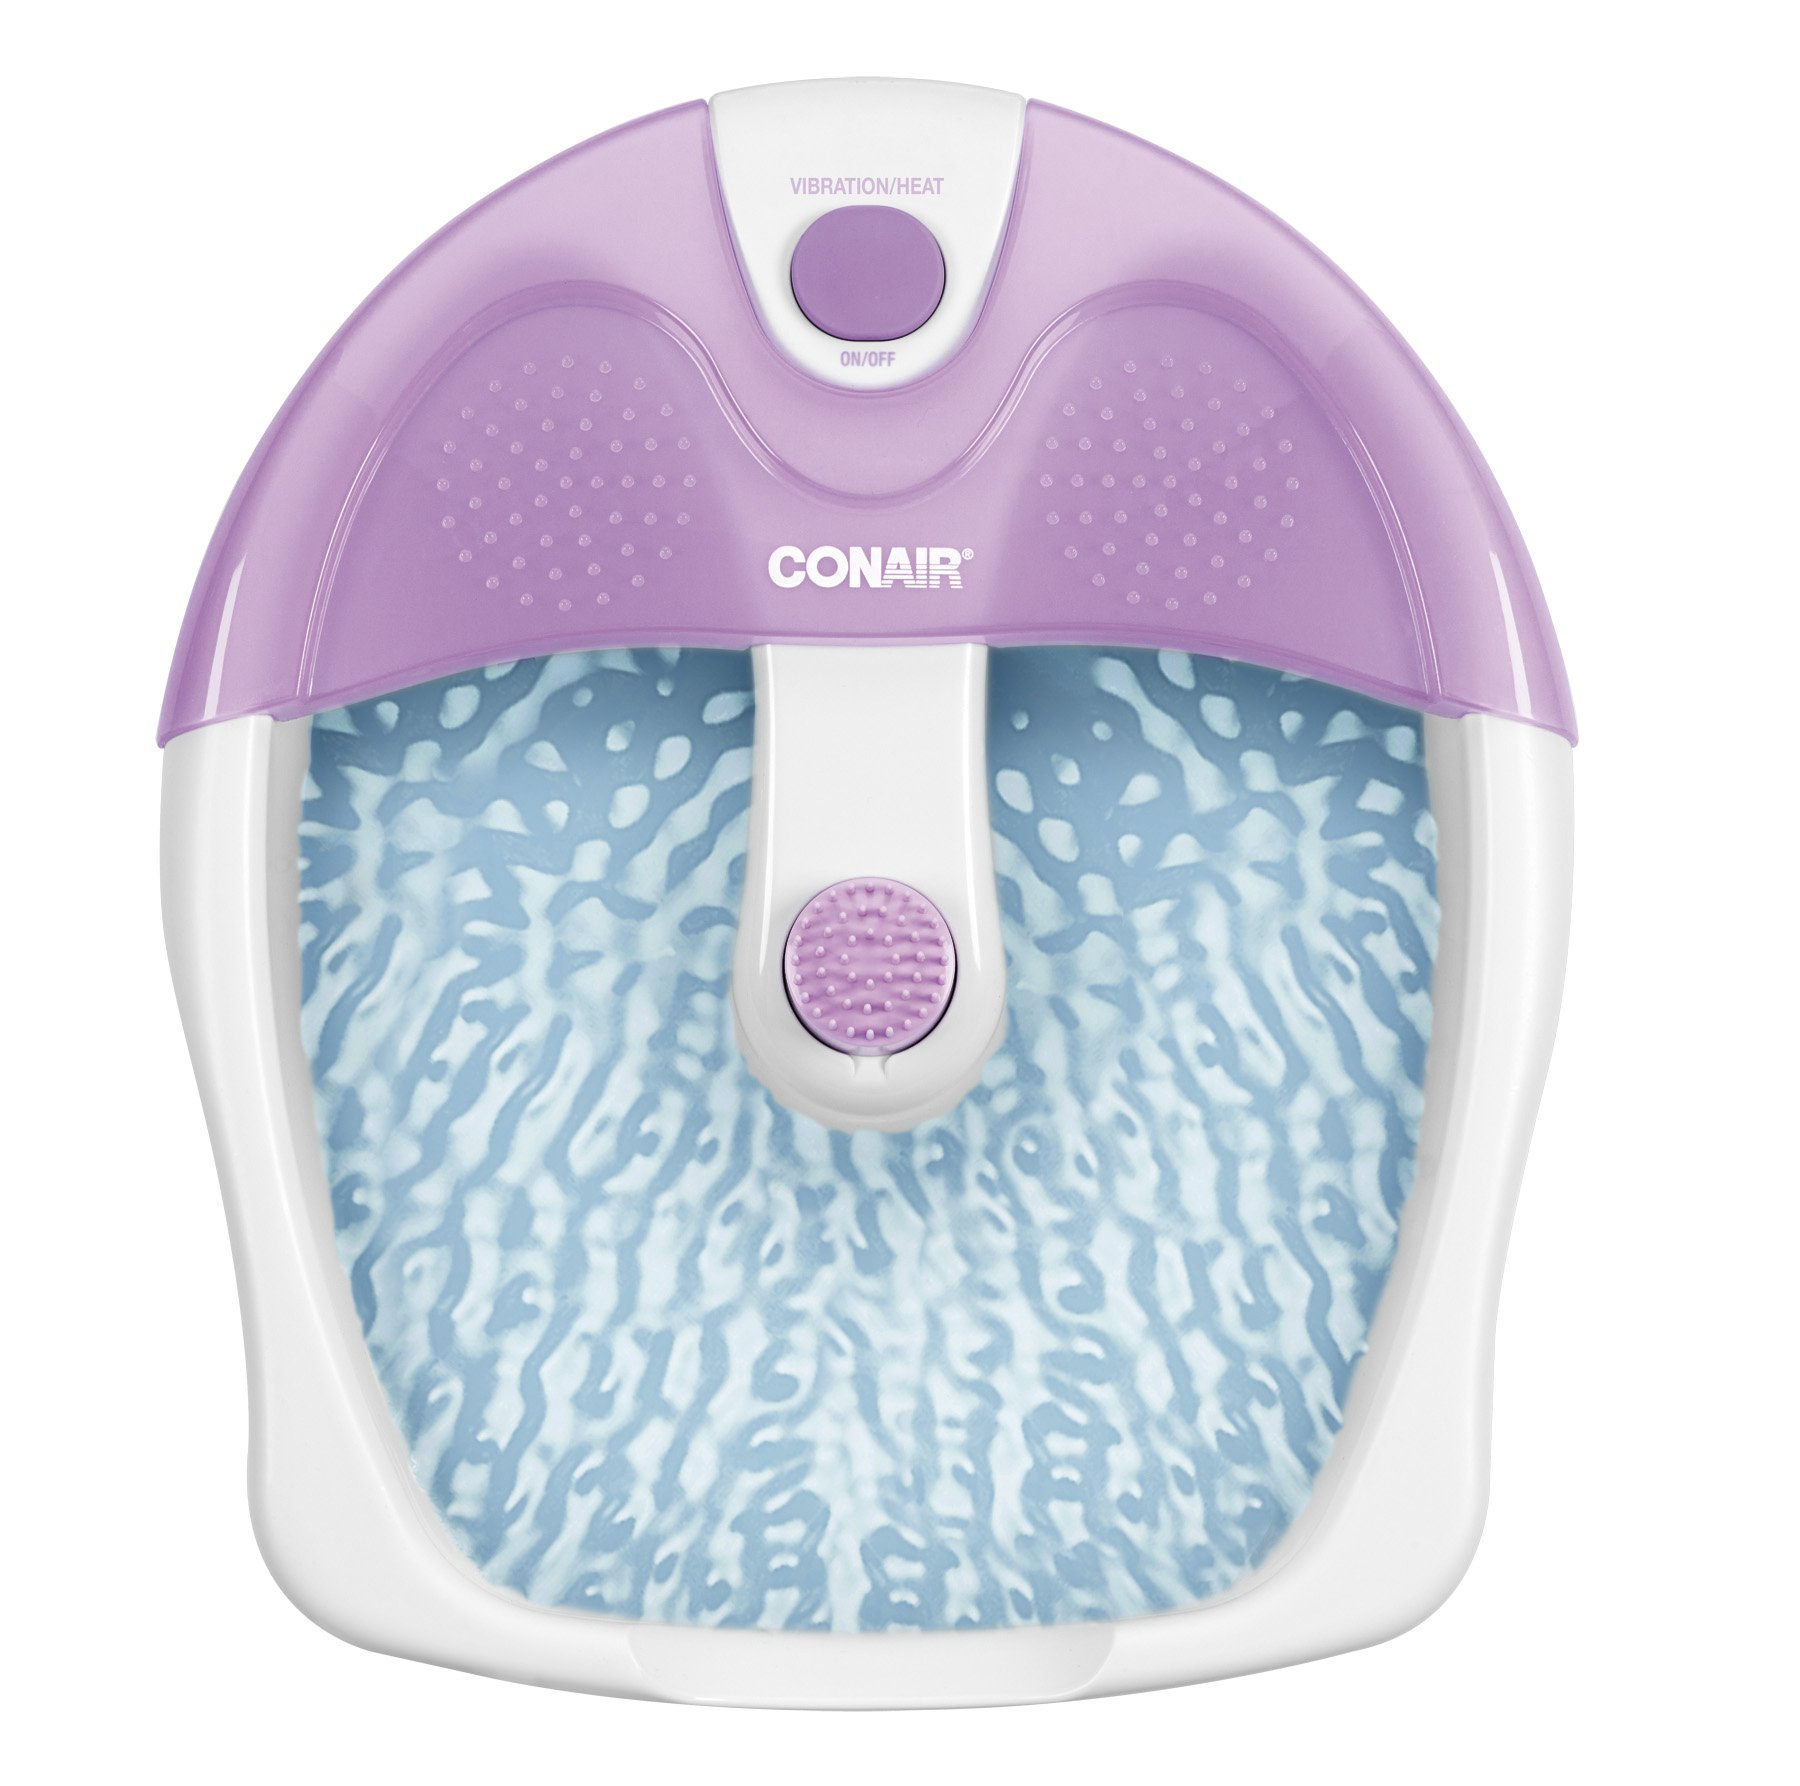 Conair Foot/Pedicure Spa with Vibration